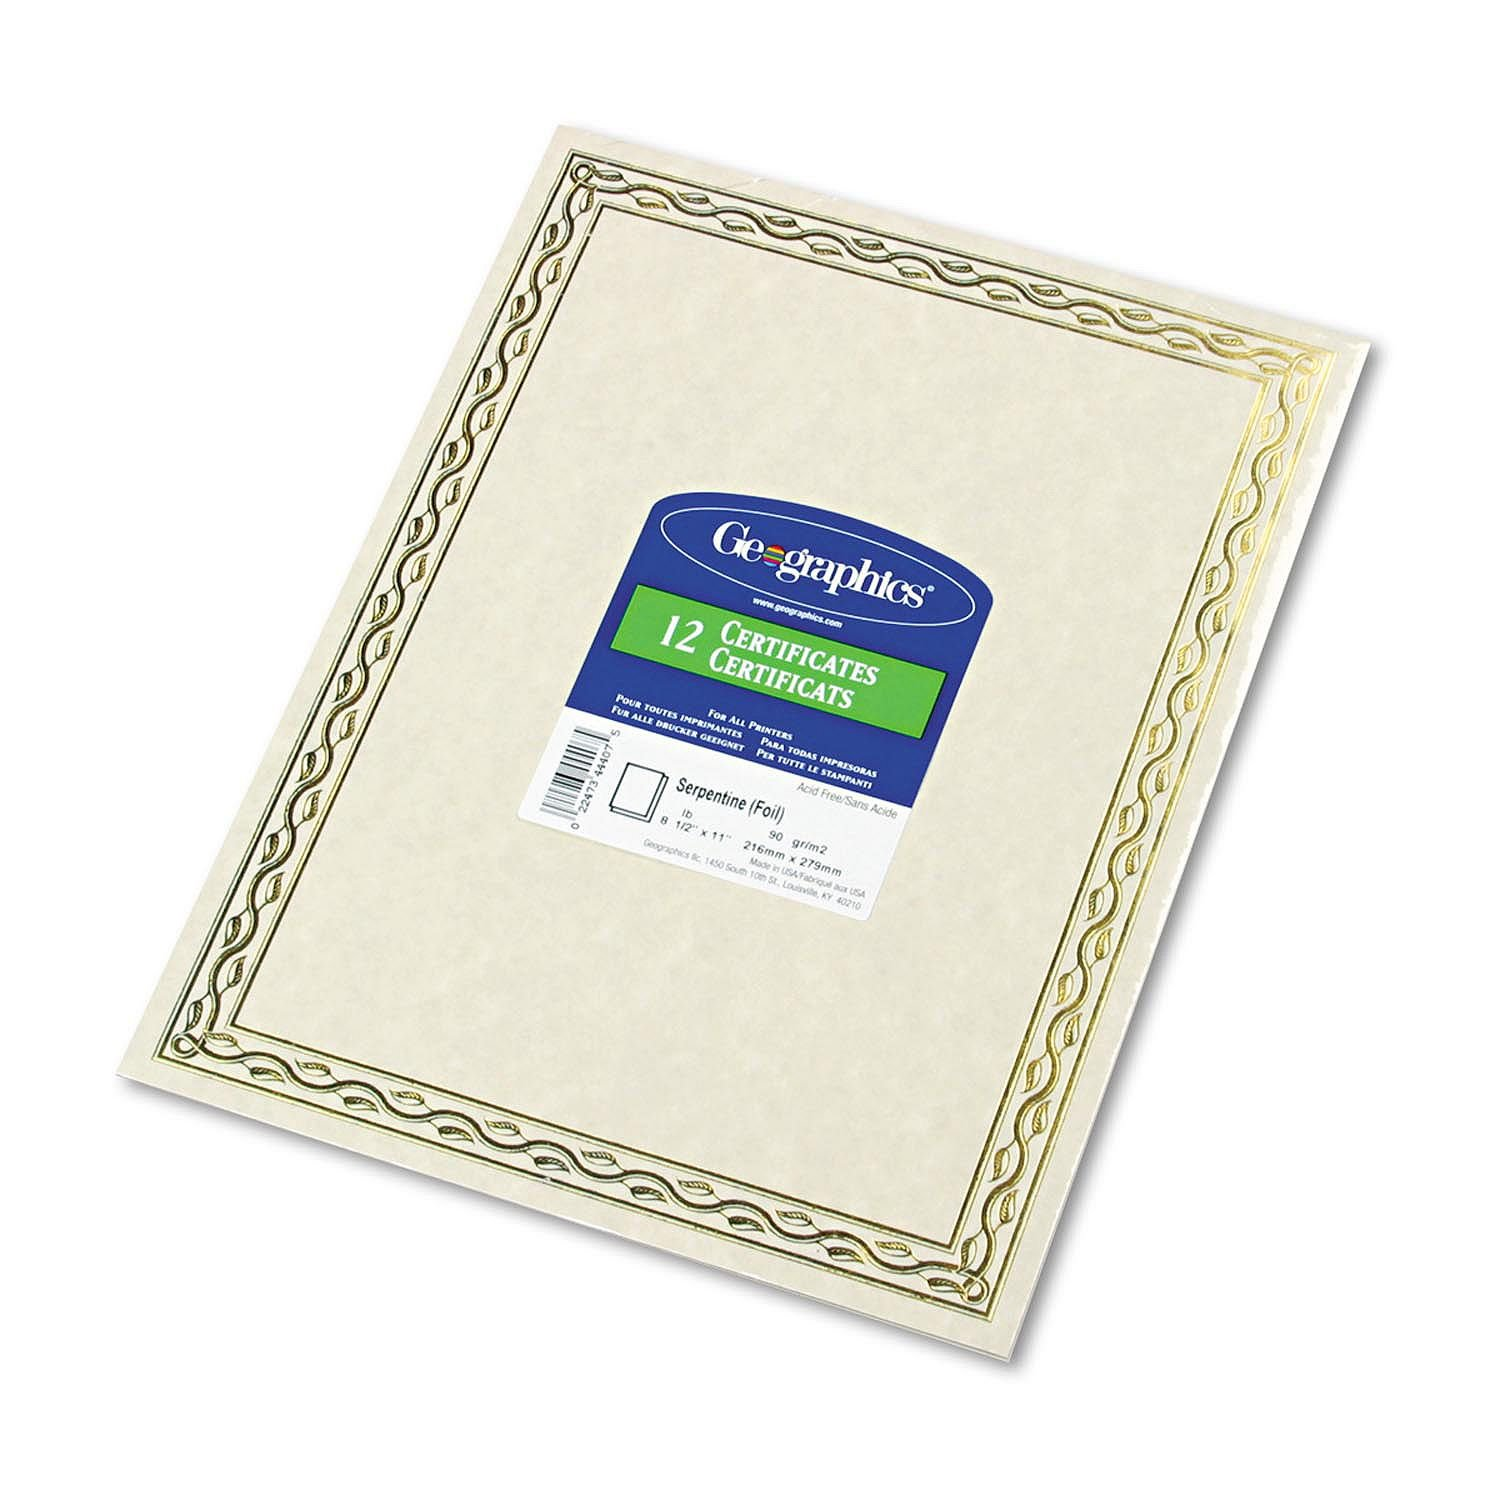 Geographics - Foil Stamped Award Certificates, 8-1/2 x 11, Gold Serpentine Border, 12 per Pack 44407 by Geographics (Image #1)